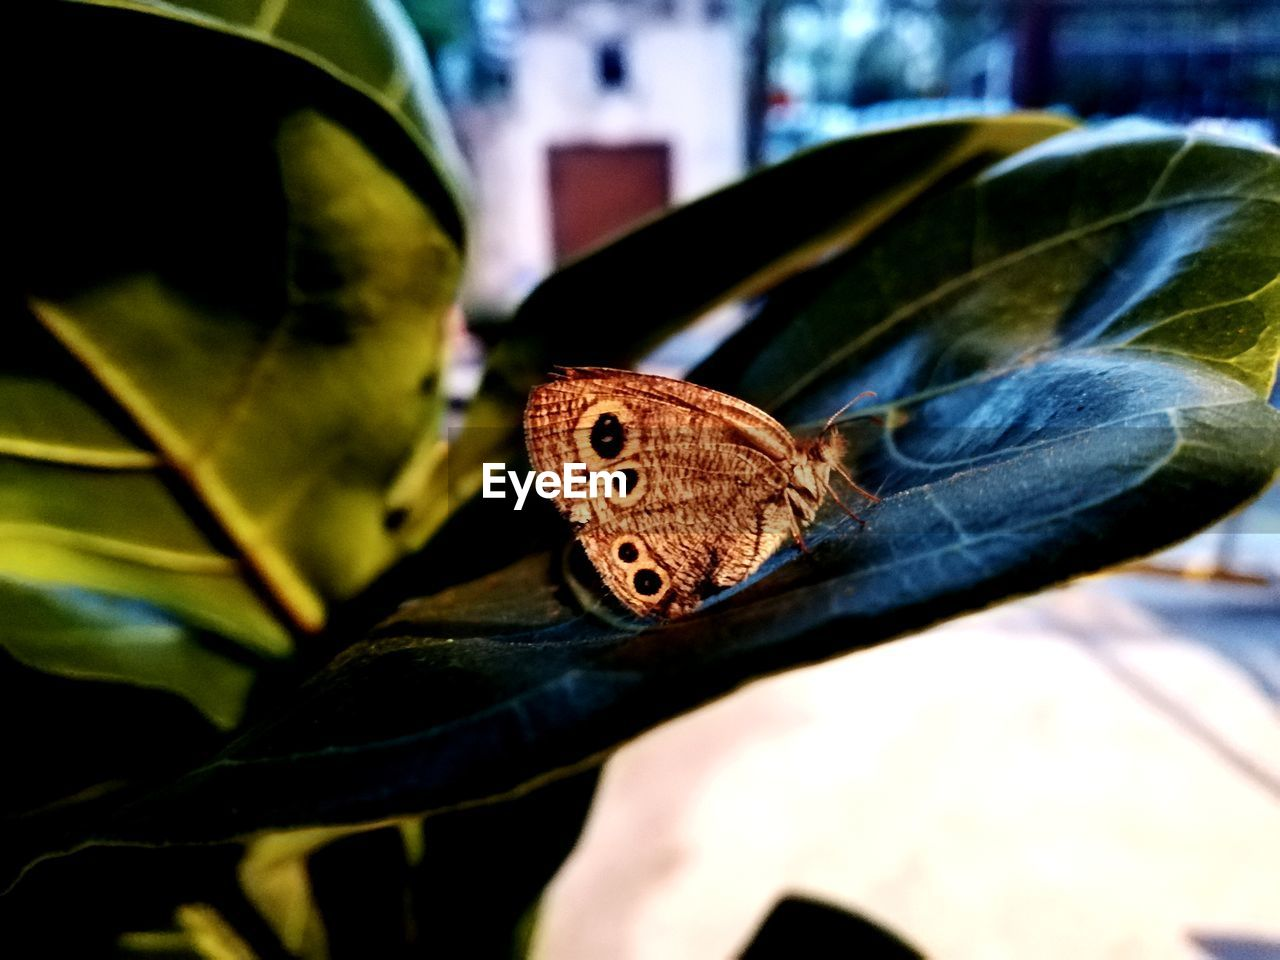 leaf, plant part, invertebrate, insect, animal, animal themes, one animal, animal wildlife, animals in the wild, close-up, butterfly - insect, animal wing, nature, day, selective focus, no people, focus on foreground, brown, outdoors, animal markings, butterfly, jeans